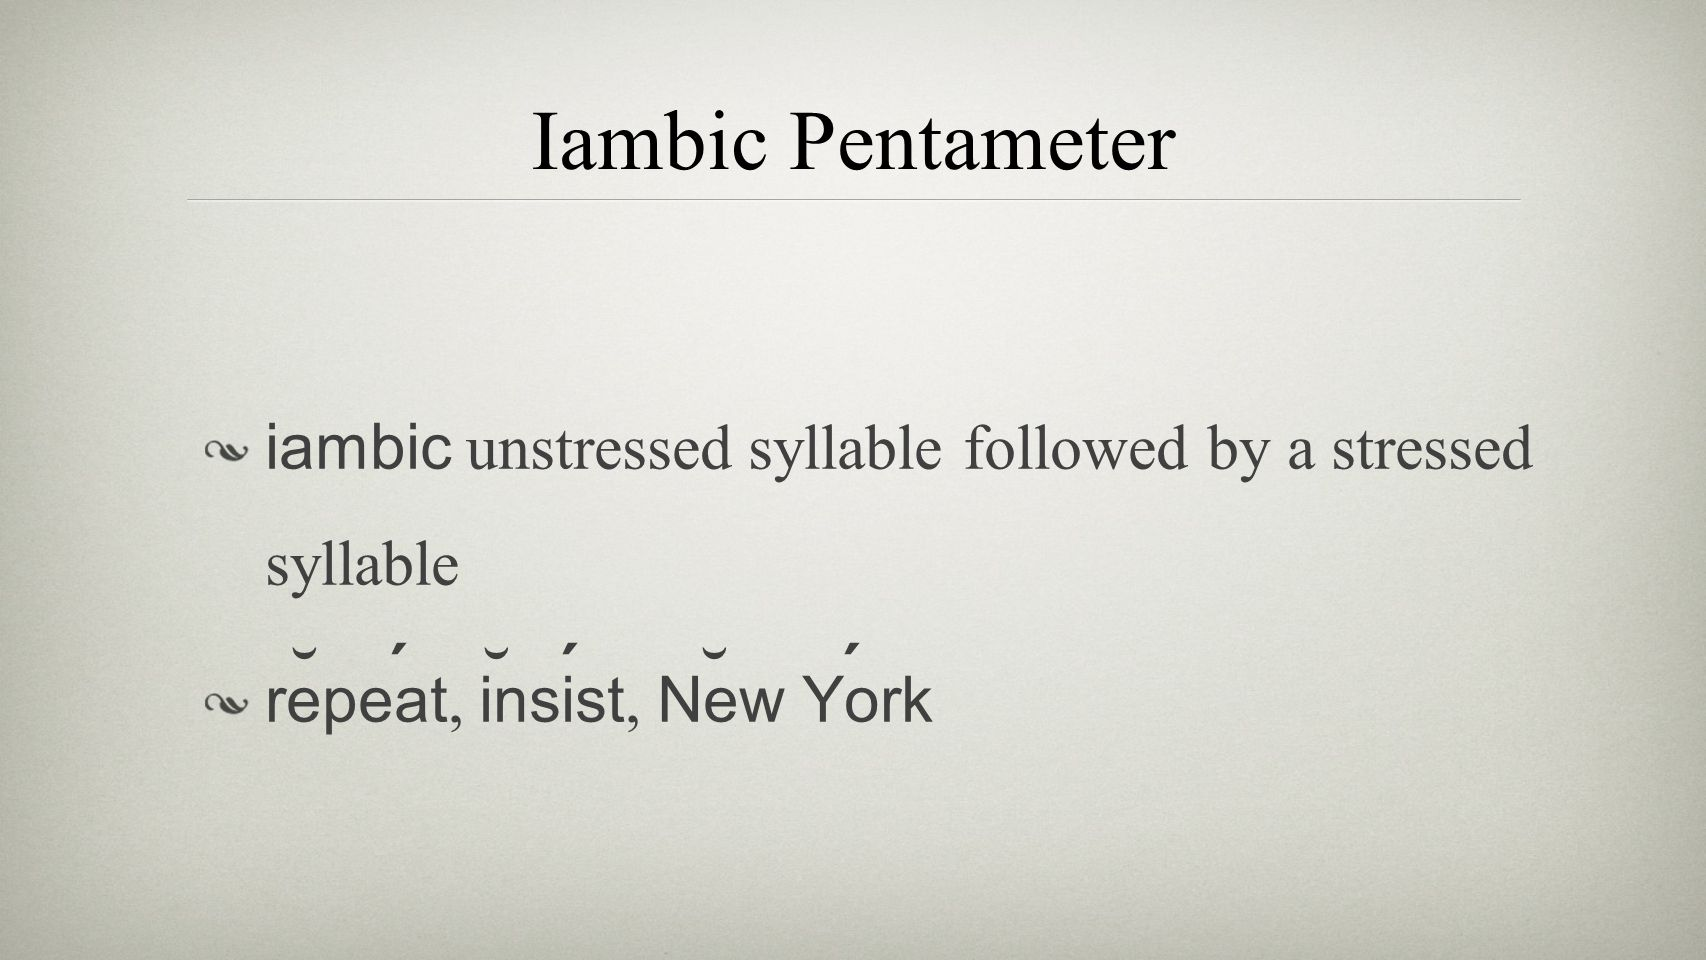 Iambic Pentameter iambic unstressed syllable followed by a stressed syllable repeat, insist, New York ˘ ´ ˘ ´ ˘ ´